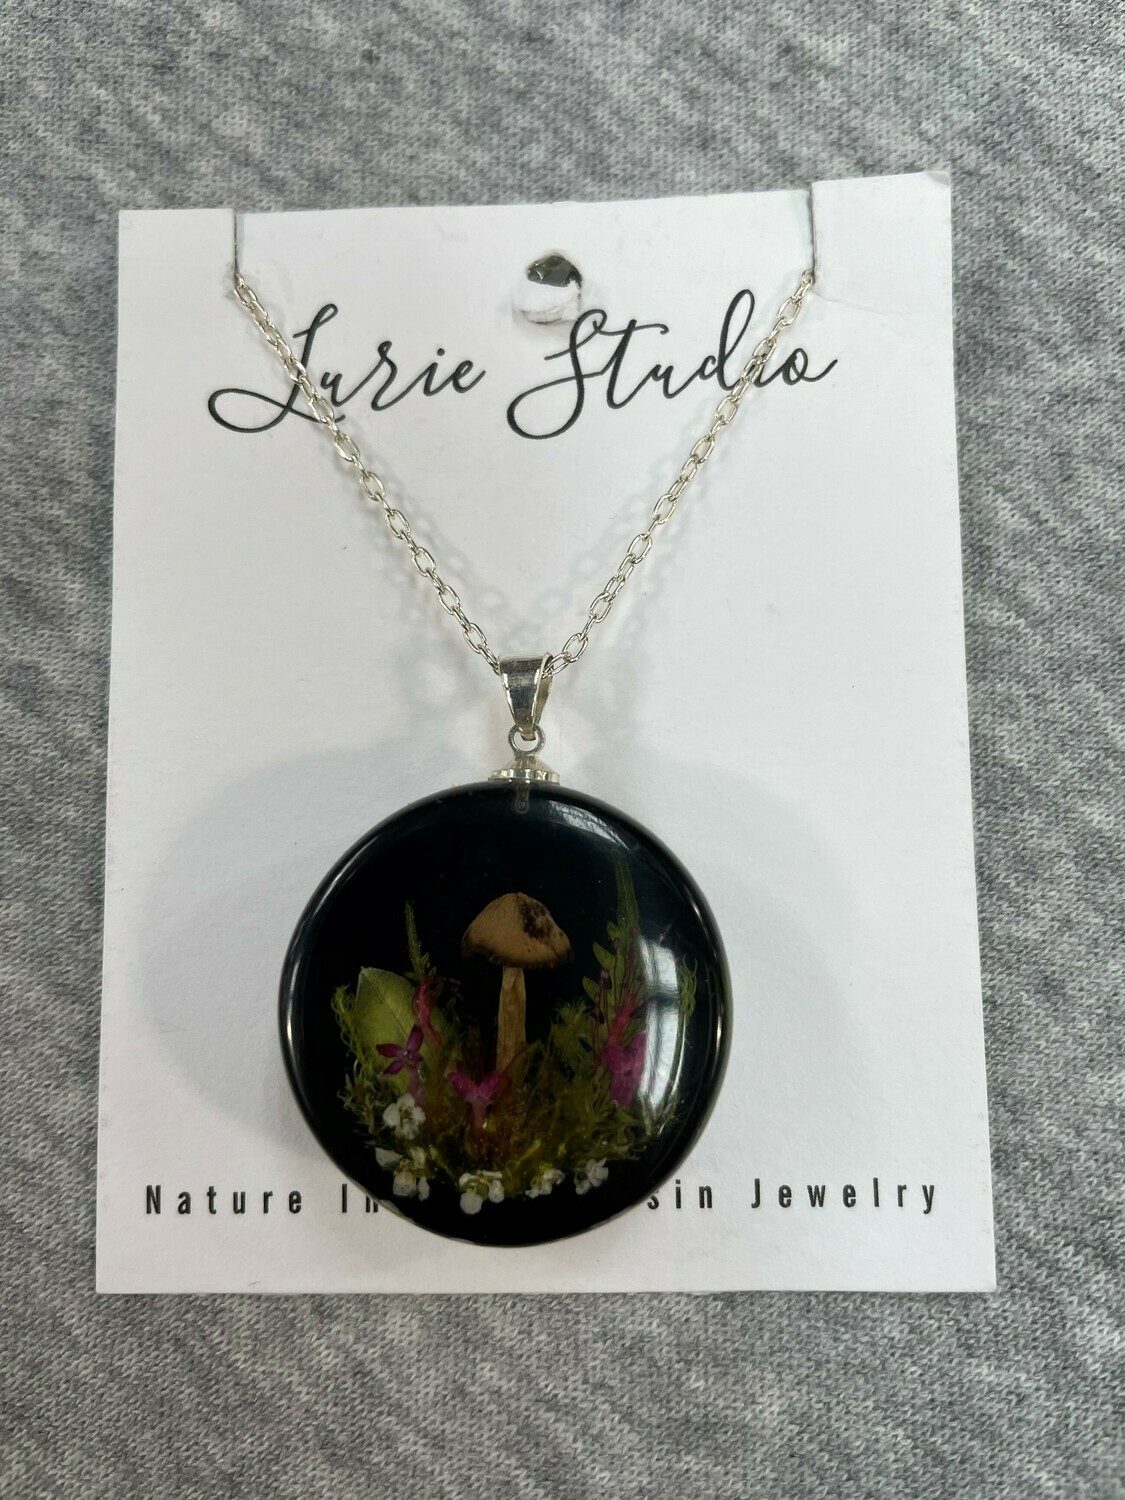 Lurie Studios Mushroom Necklace Black with Silver Plated Chain